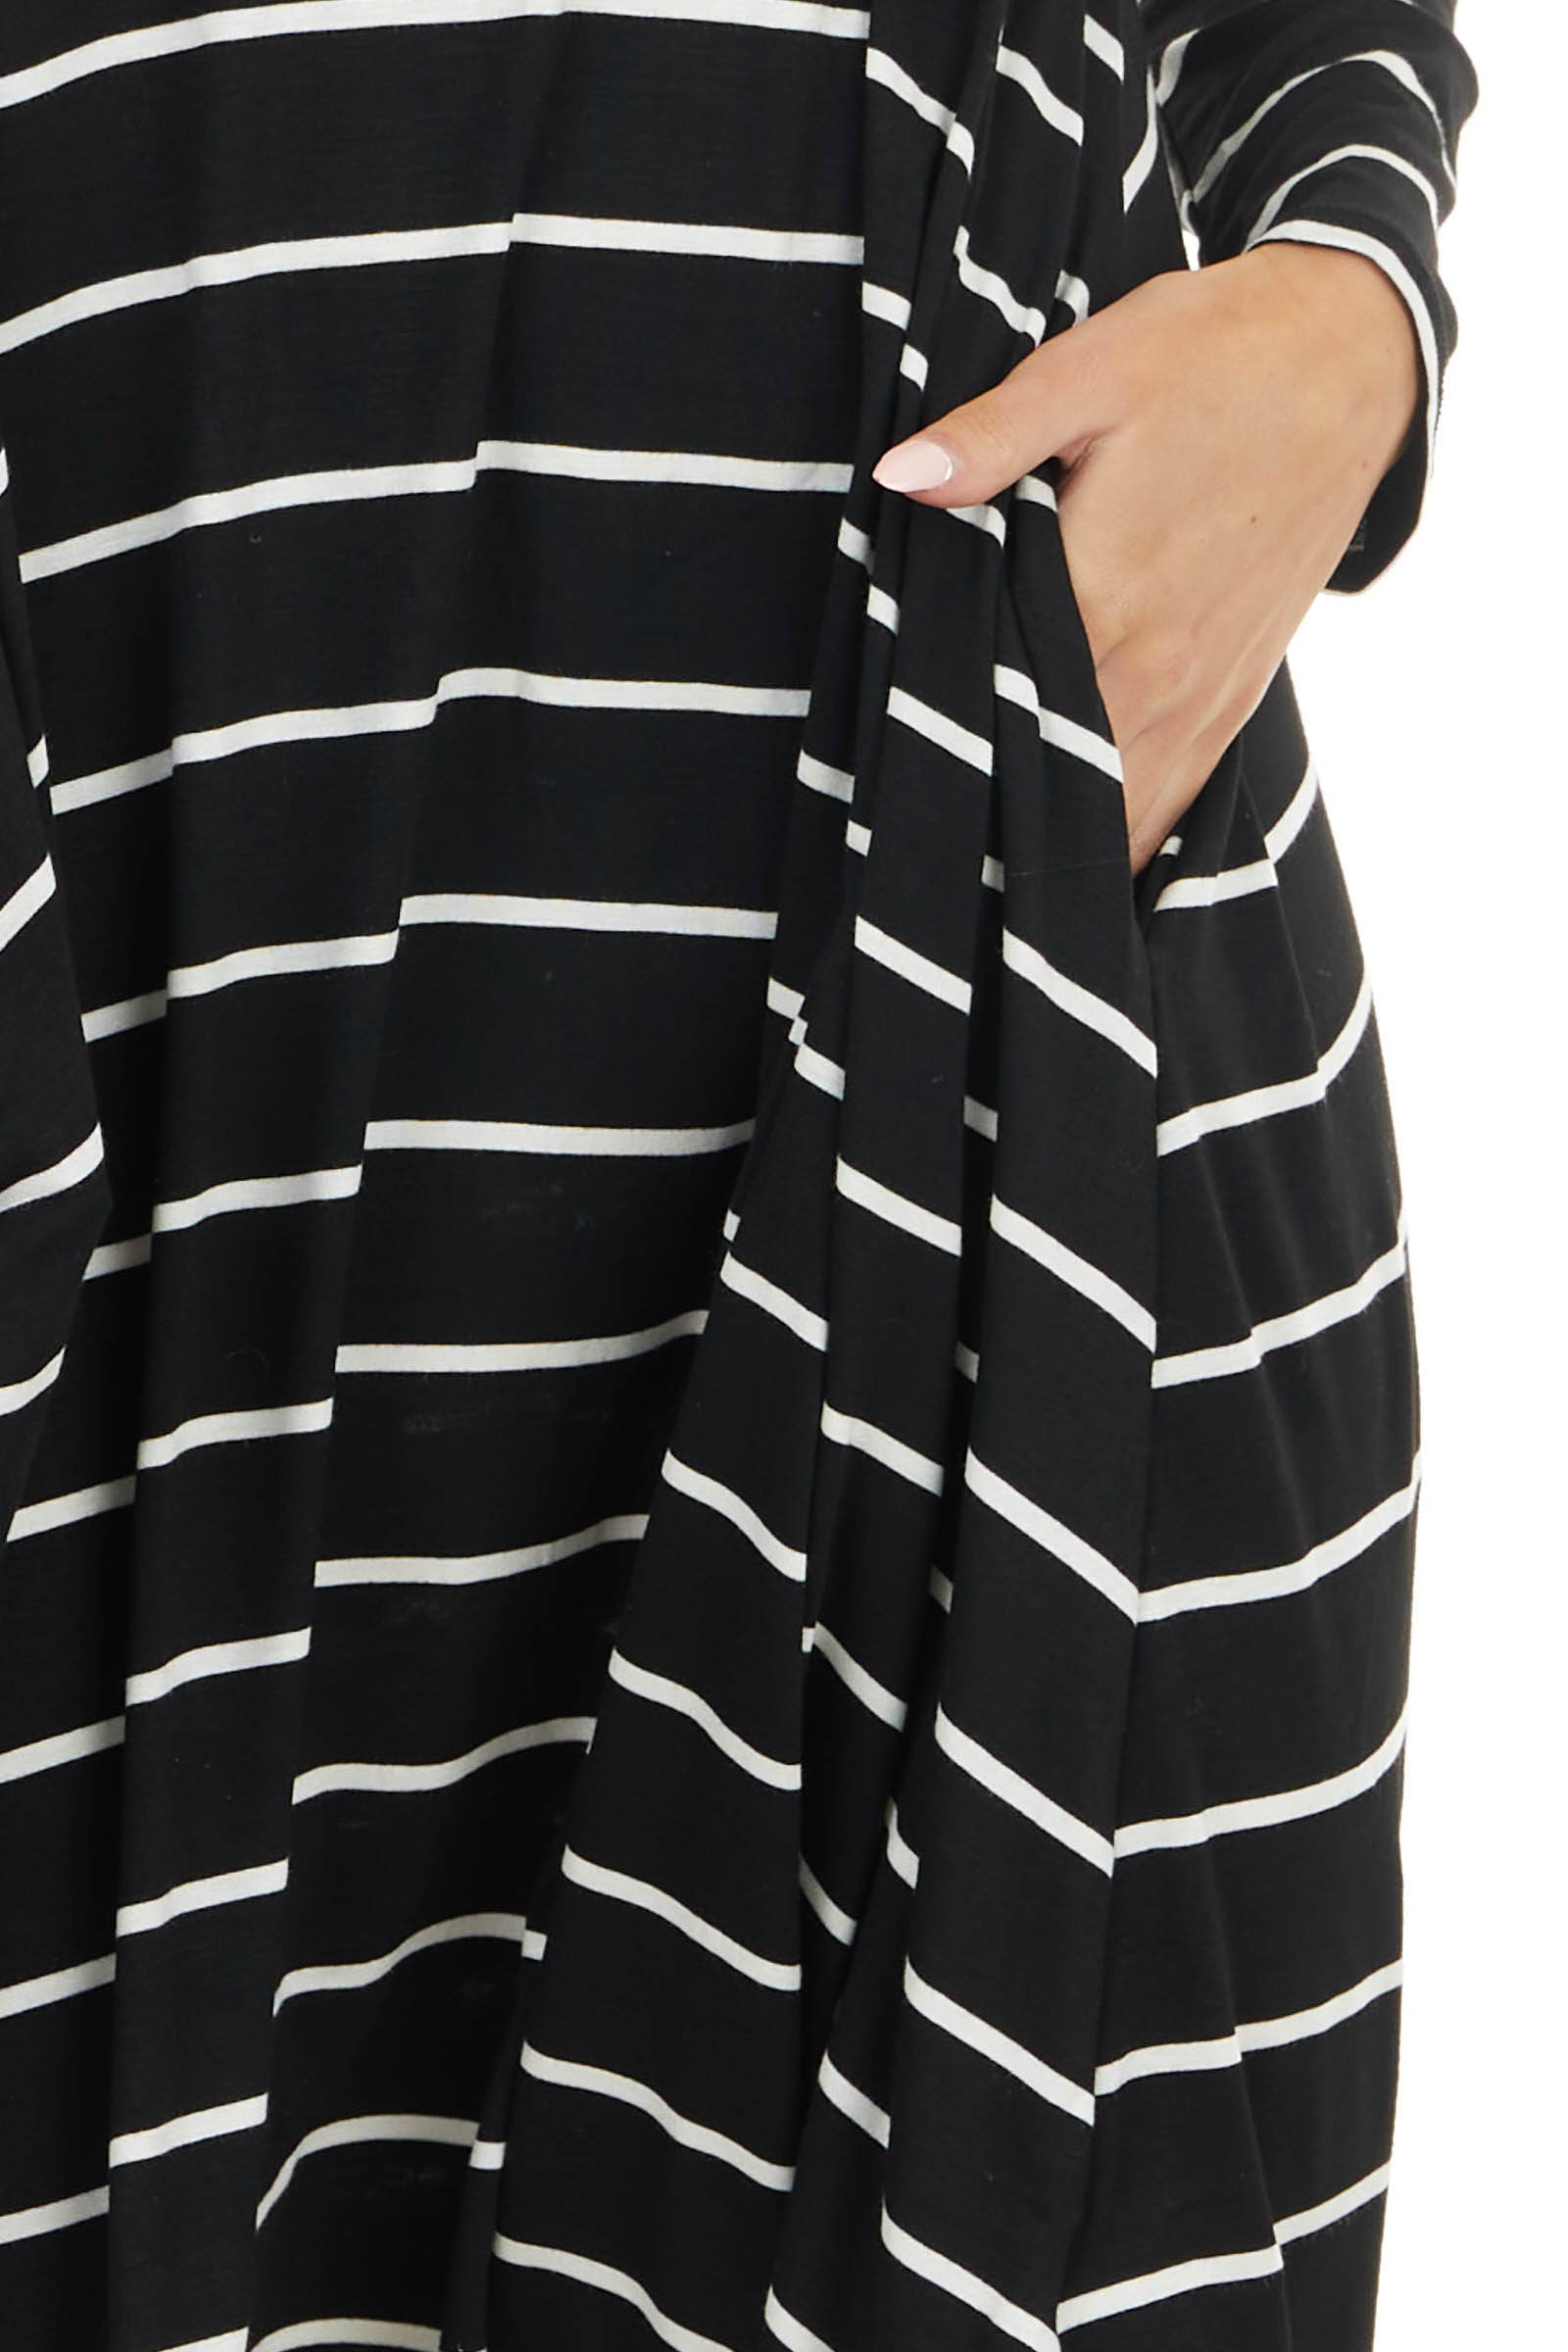 Black and White Striped Long Sleeve Dress with Pockets